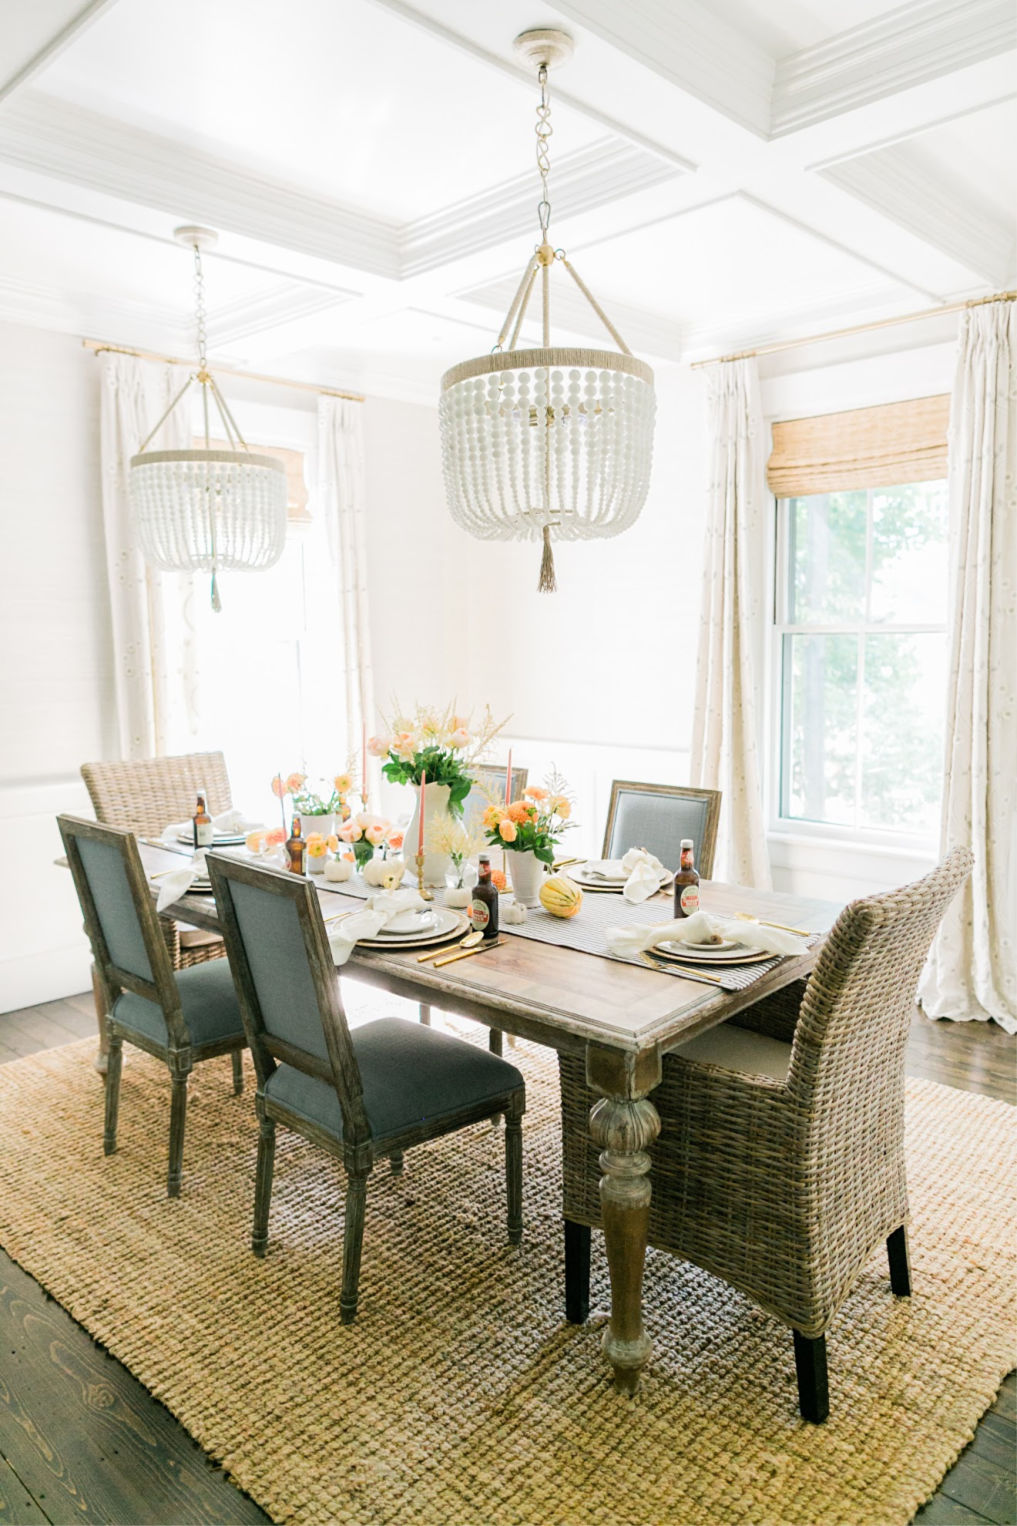 Beautiful dining room with a pair of beaded chandeliers hung from coffered ceiling kellyelko.com #farmhousestyle #farmhousedecor #cottagestyle #neutraldecor #diningroom #diningroomlighting #lighting #diningroomdecor #neutraldecor